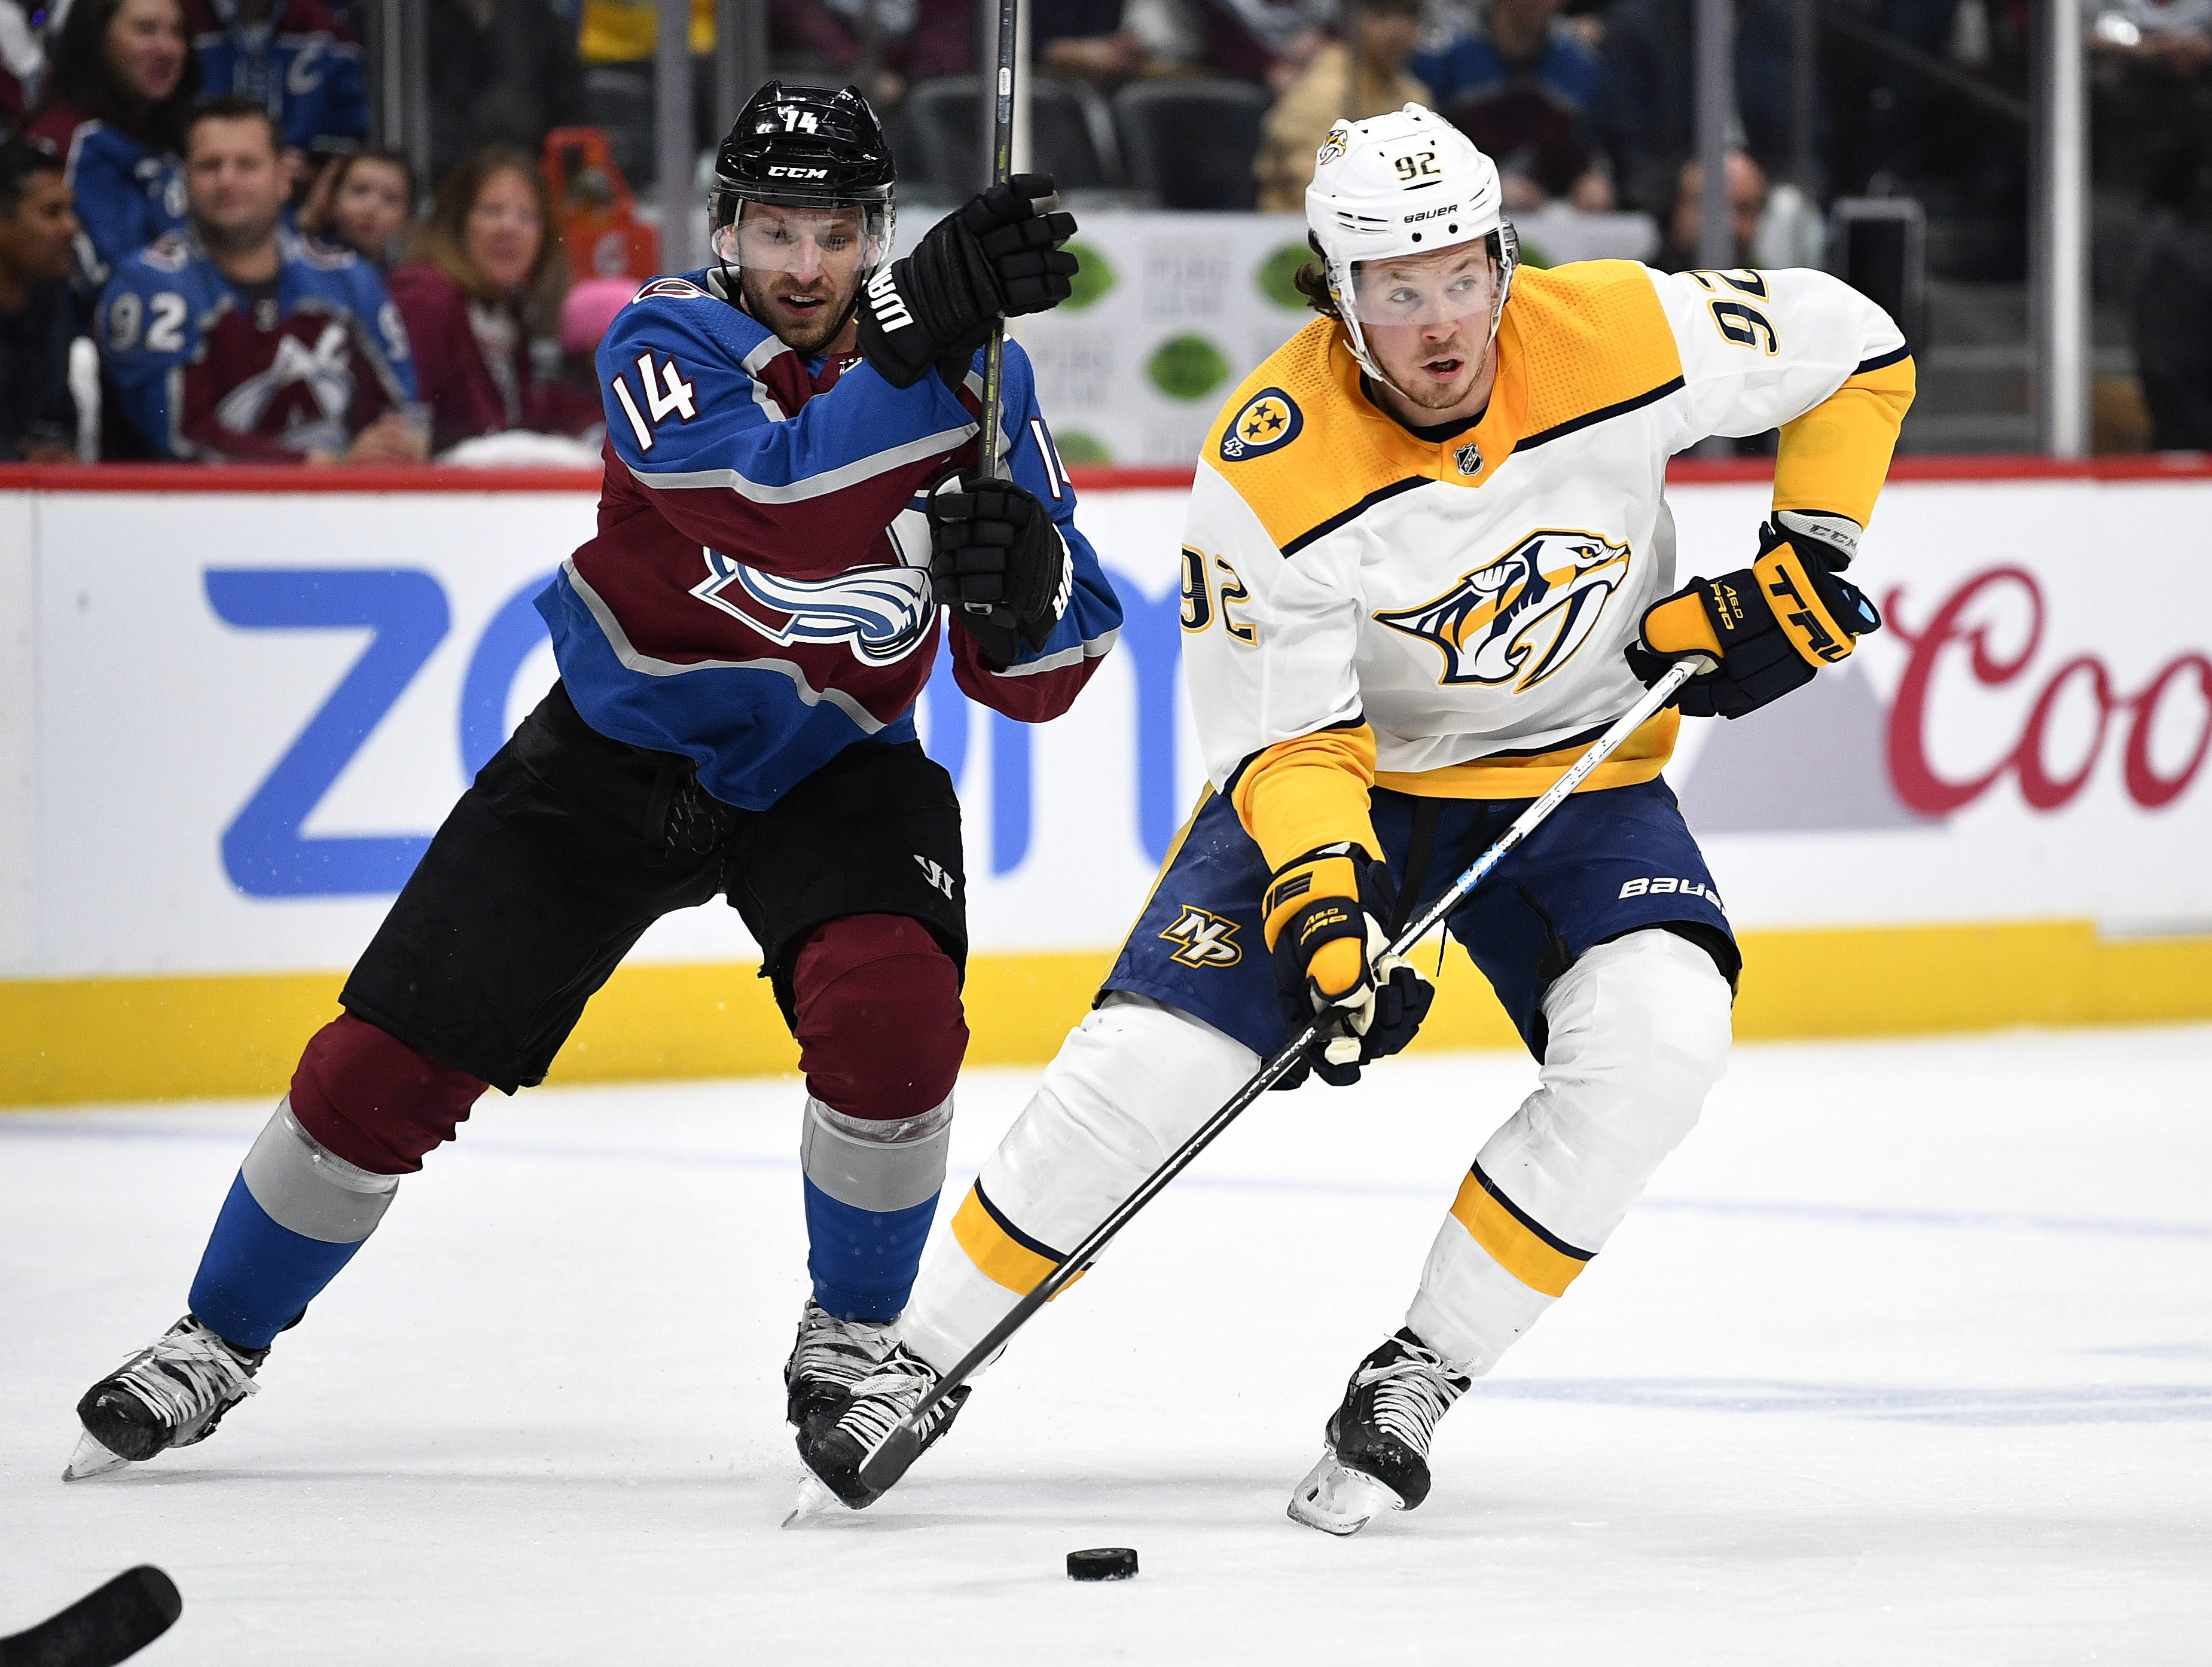 #92, Ryan Johansen, Forward - Nashville Predators center Ryan Johansen (92) moves the puck as Colorado Avalanche left wing Blake Comeau (14) defends during the first period of game 4 in the first round NHL Stanley Cup Playoffs at the Pepsi Center, Wednesday, April 18, 2018, in Denver, Colo.